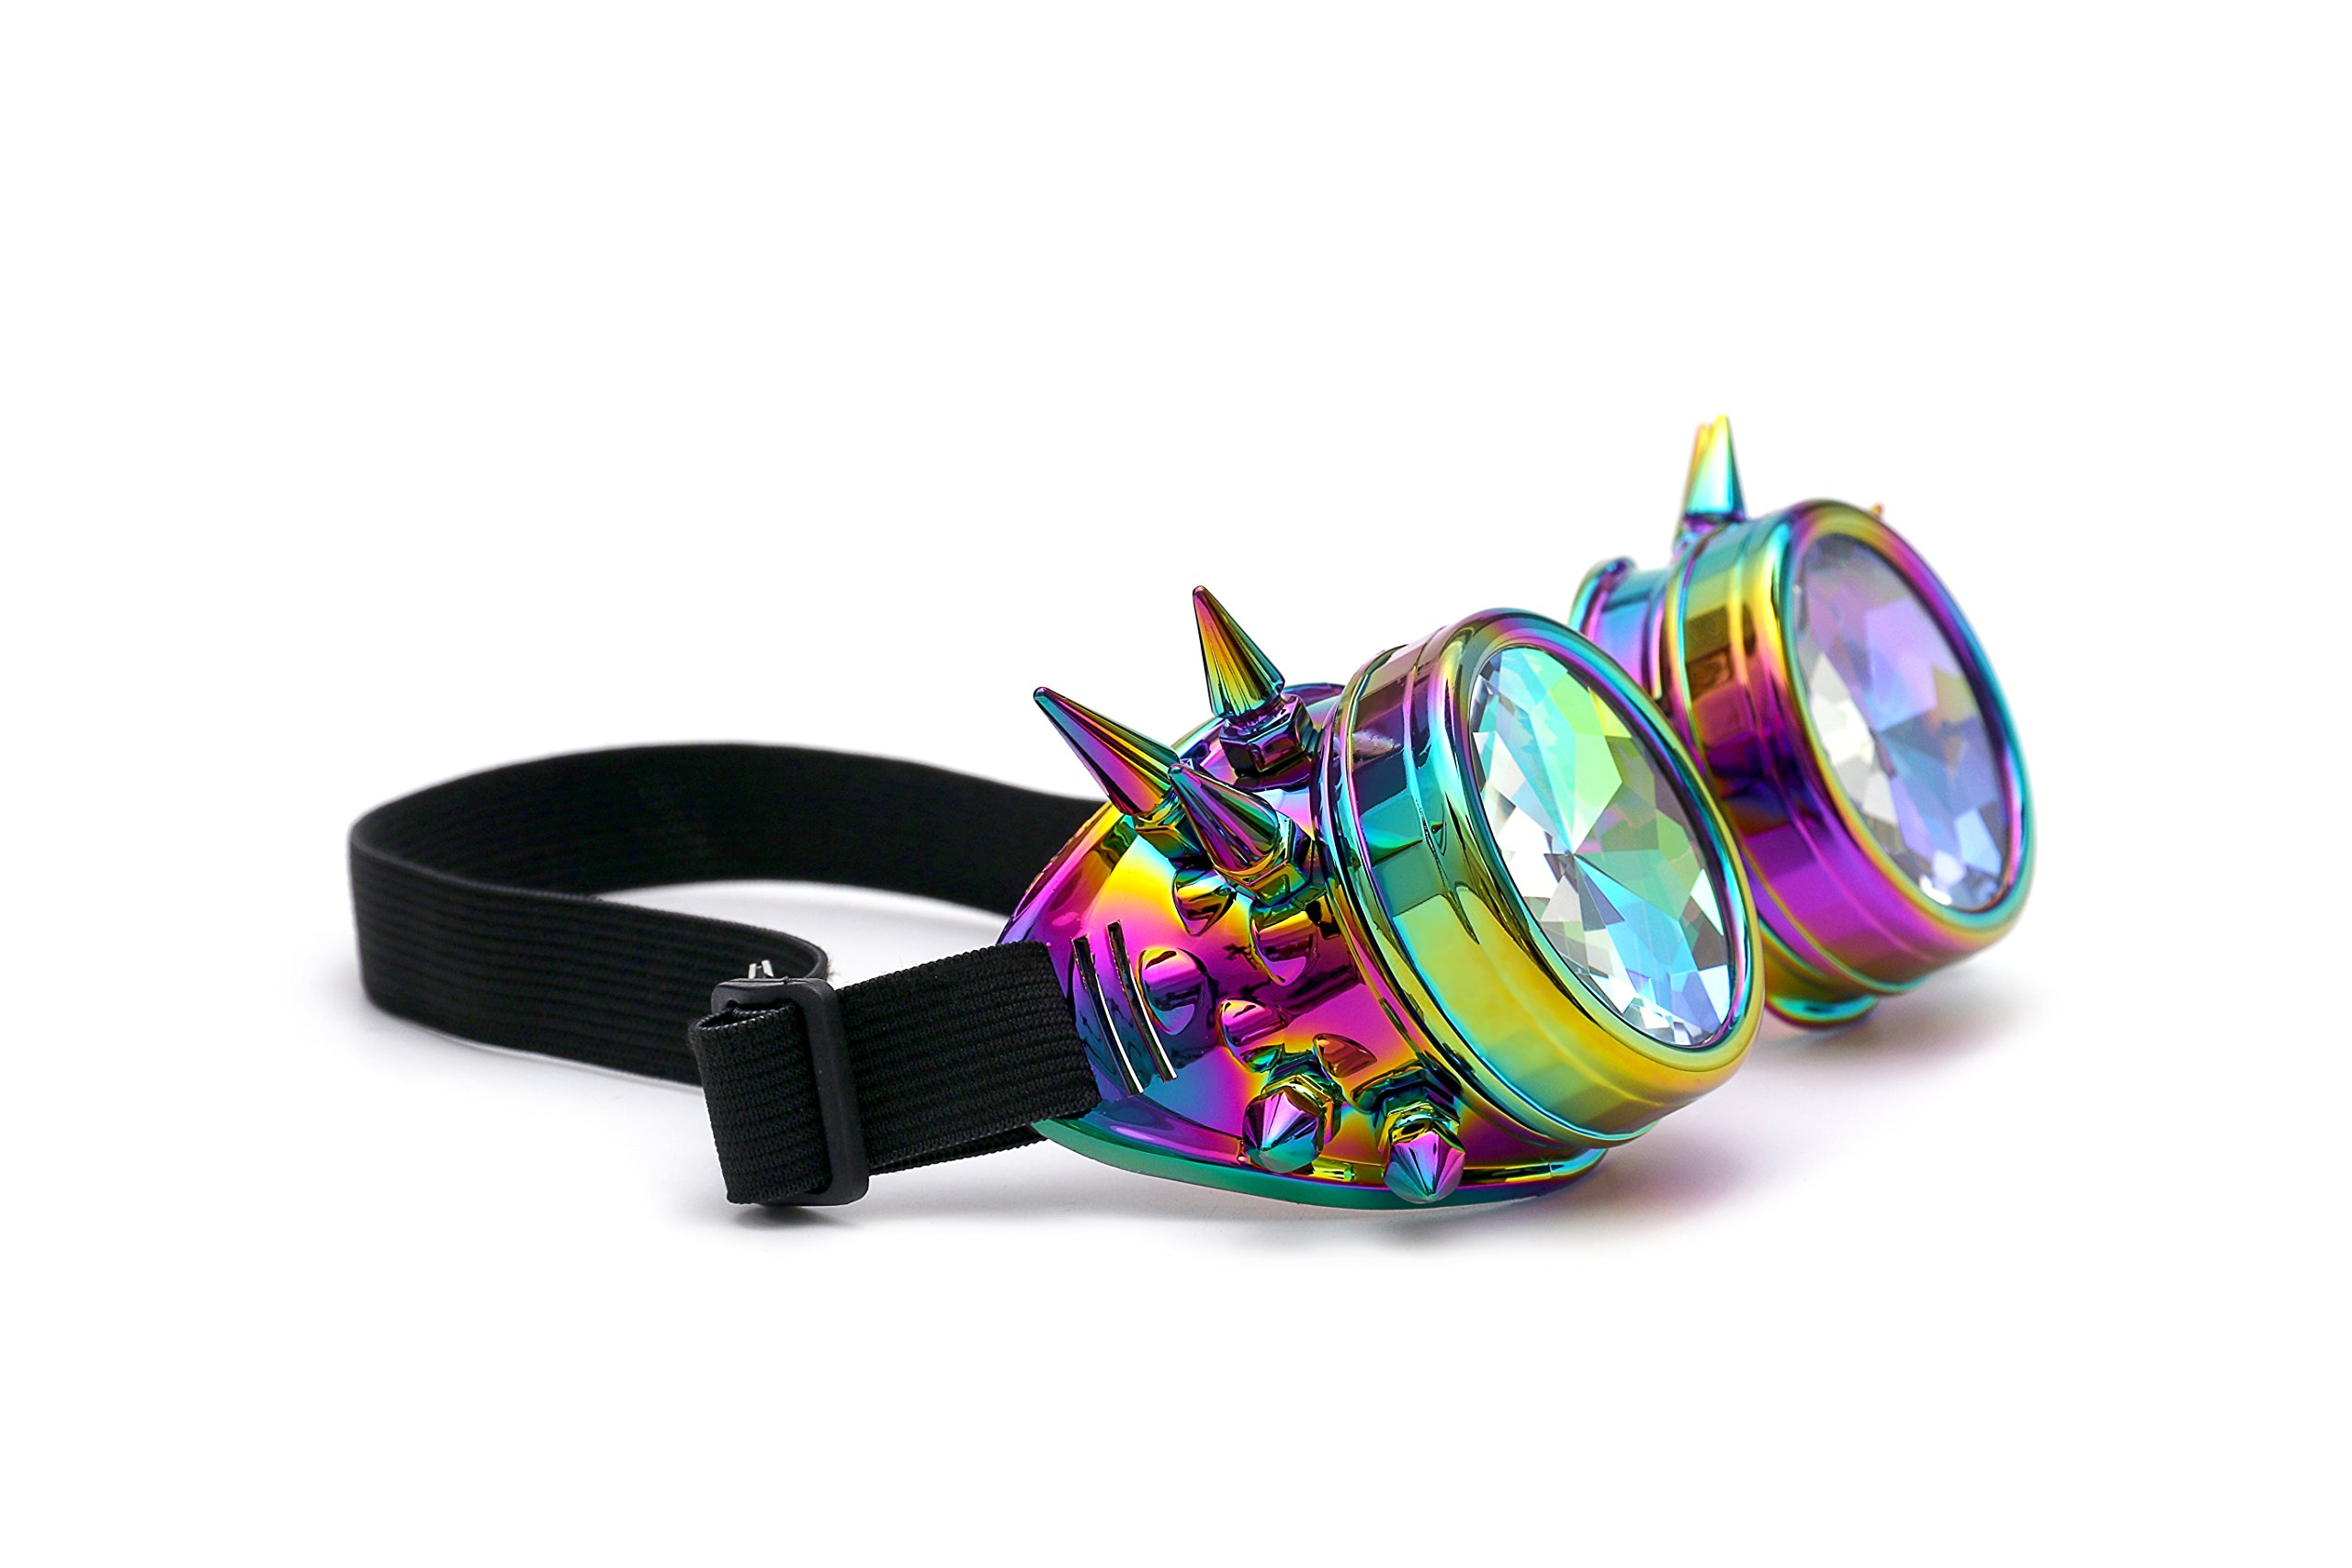 FIRSTLIKE Festivals Kaleidoscope Rainbow Glasses Prism Sunglasses Goggles by FIRSTLIKE (Image #6)